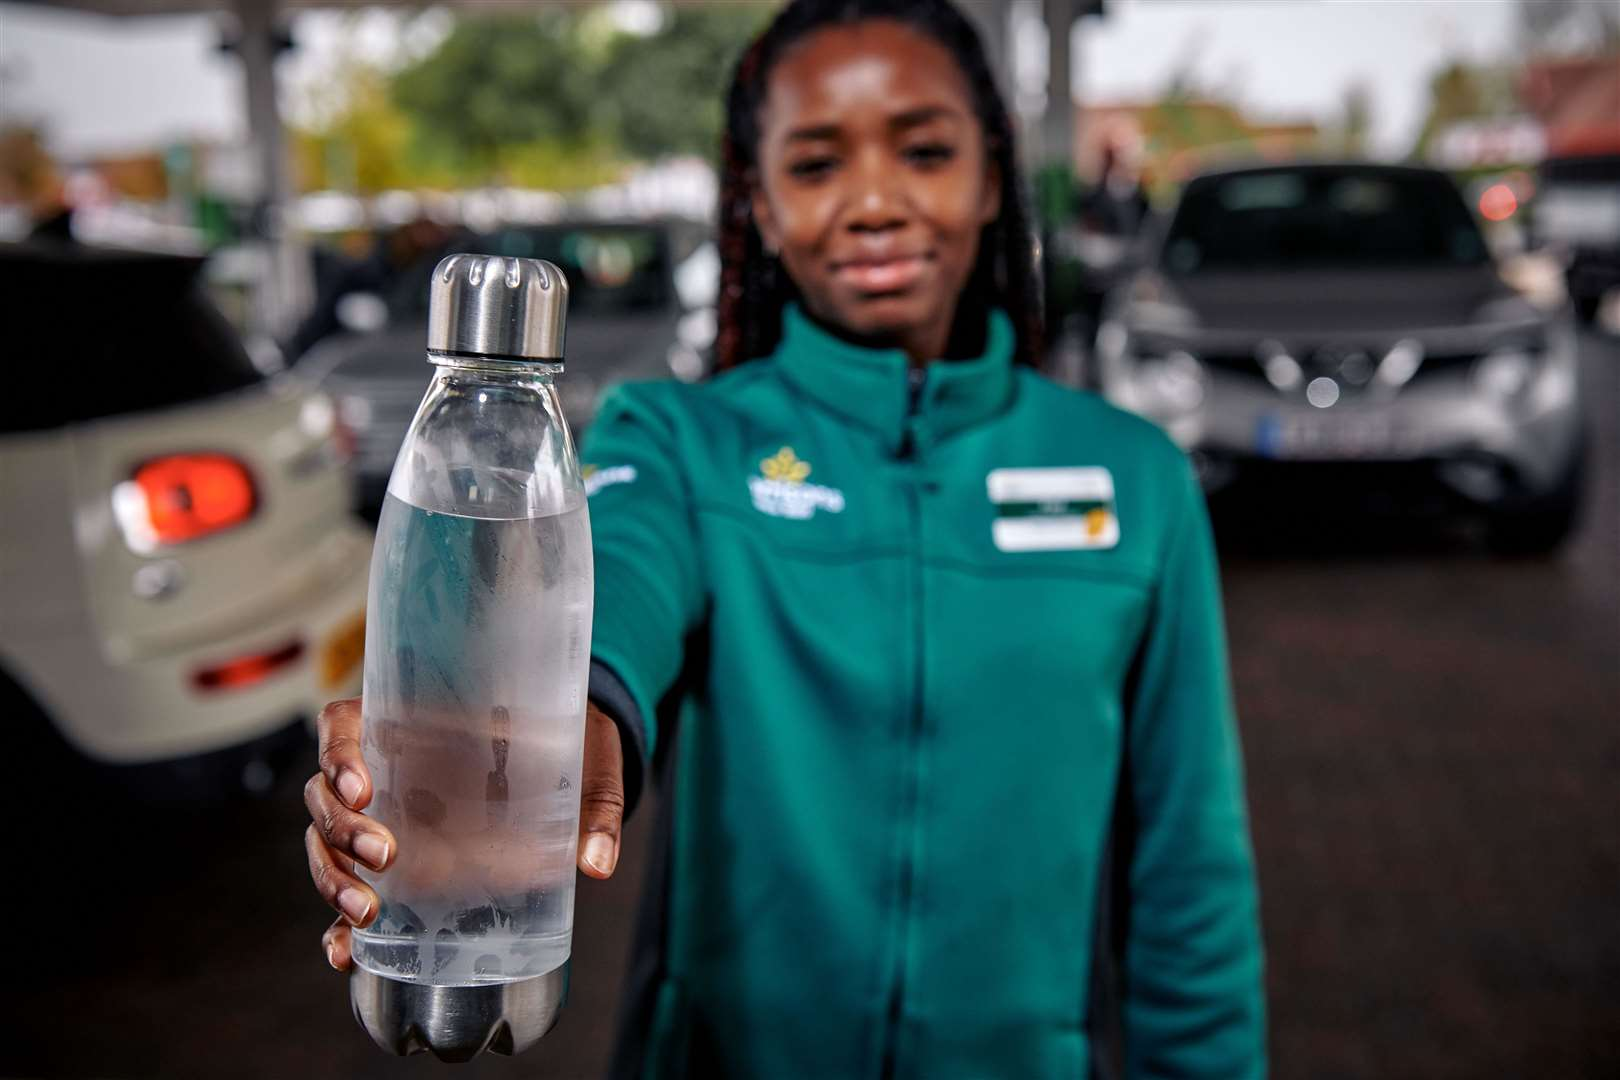 Morrisons is offering free water refills at all of its petrol stations to encourage motorists to make the switch from single-use plastic to refillable bottles.